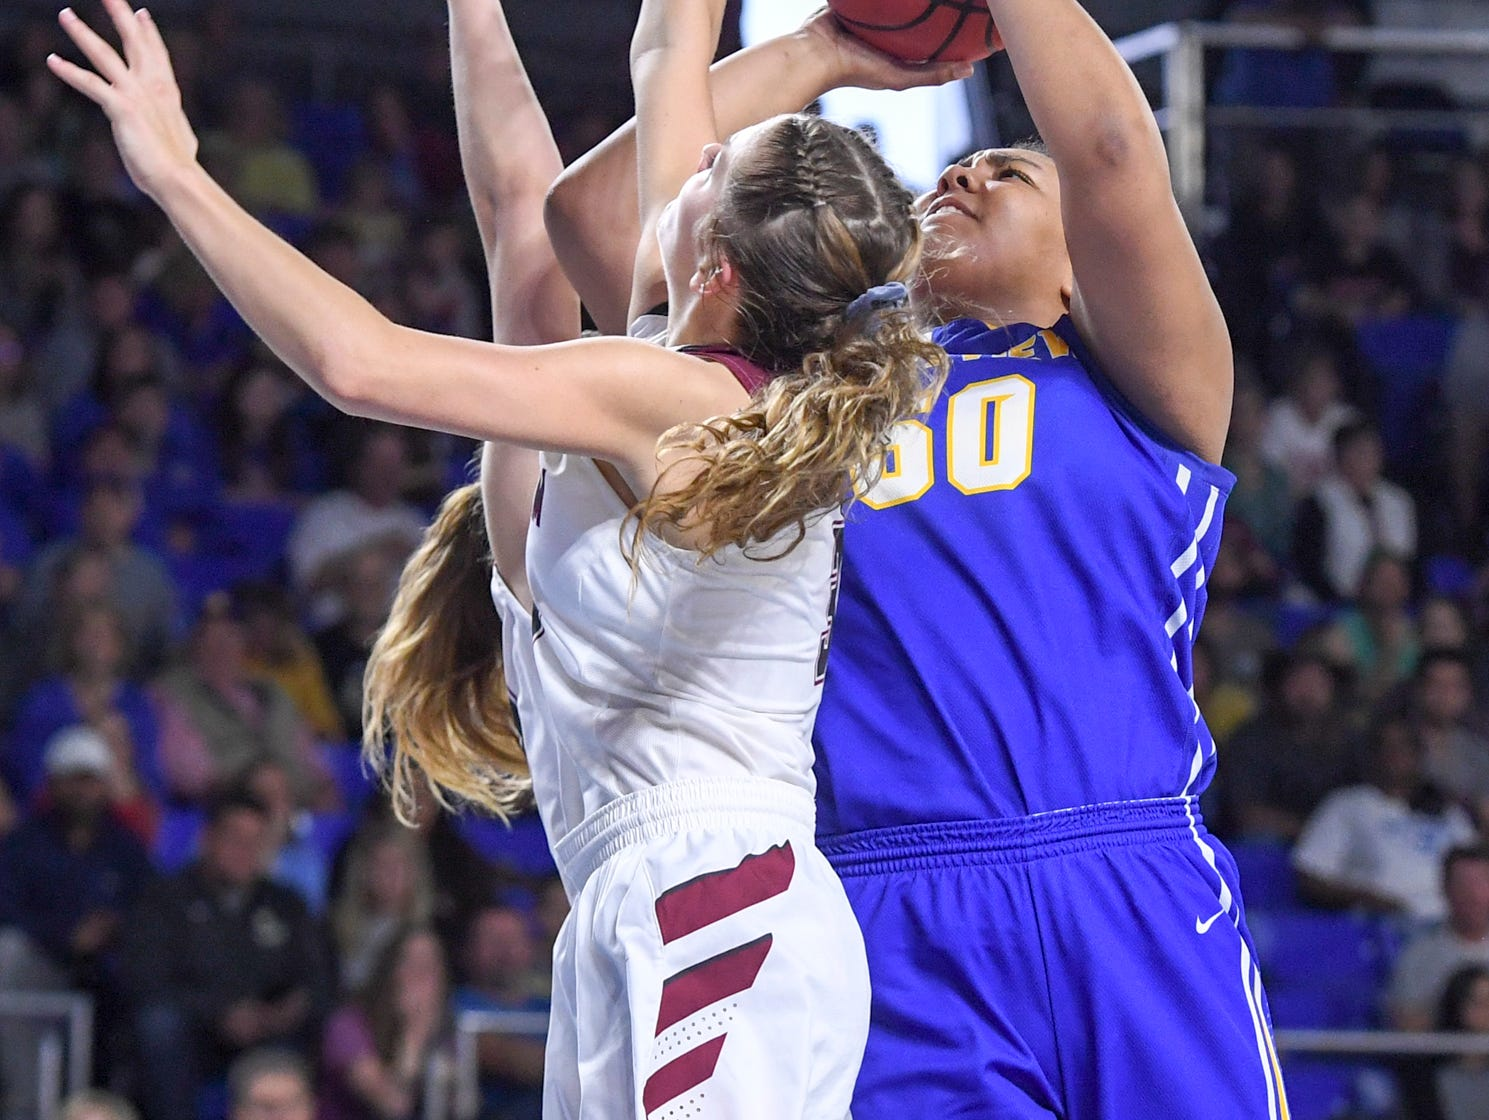 Westview's Raegan Johnson (50) goes up for a shot over two Cheatham County defenders during their Class AA championship game, Saturday, March 9, 2019, in Murfreesboro. Westview fell to Cheatham County, 43-40.